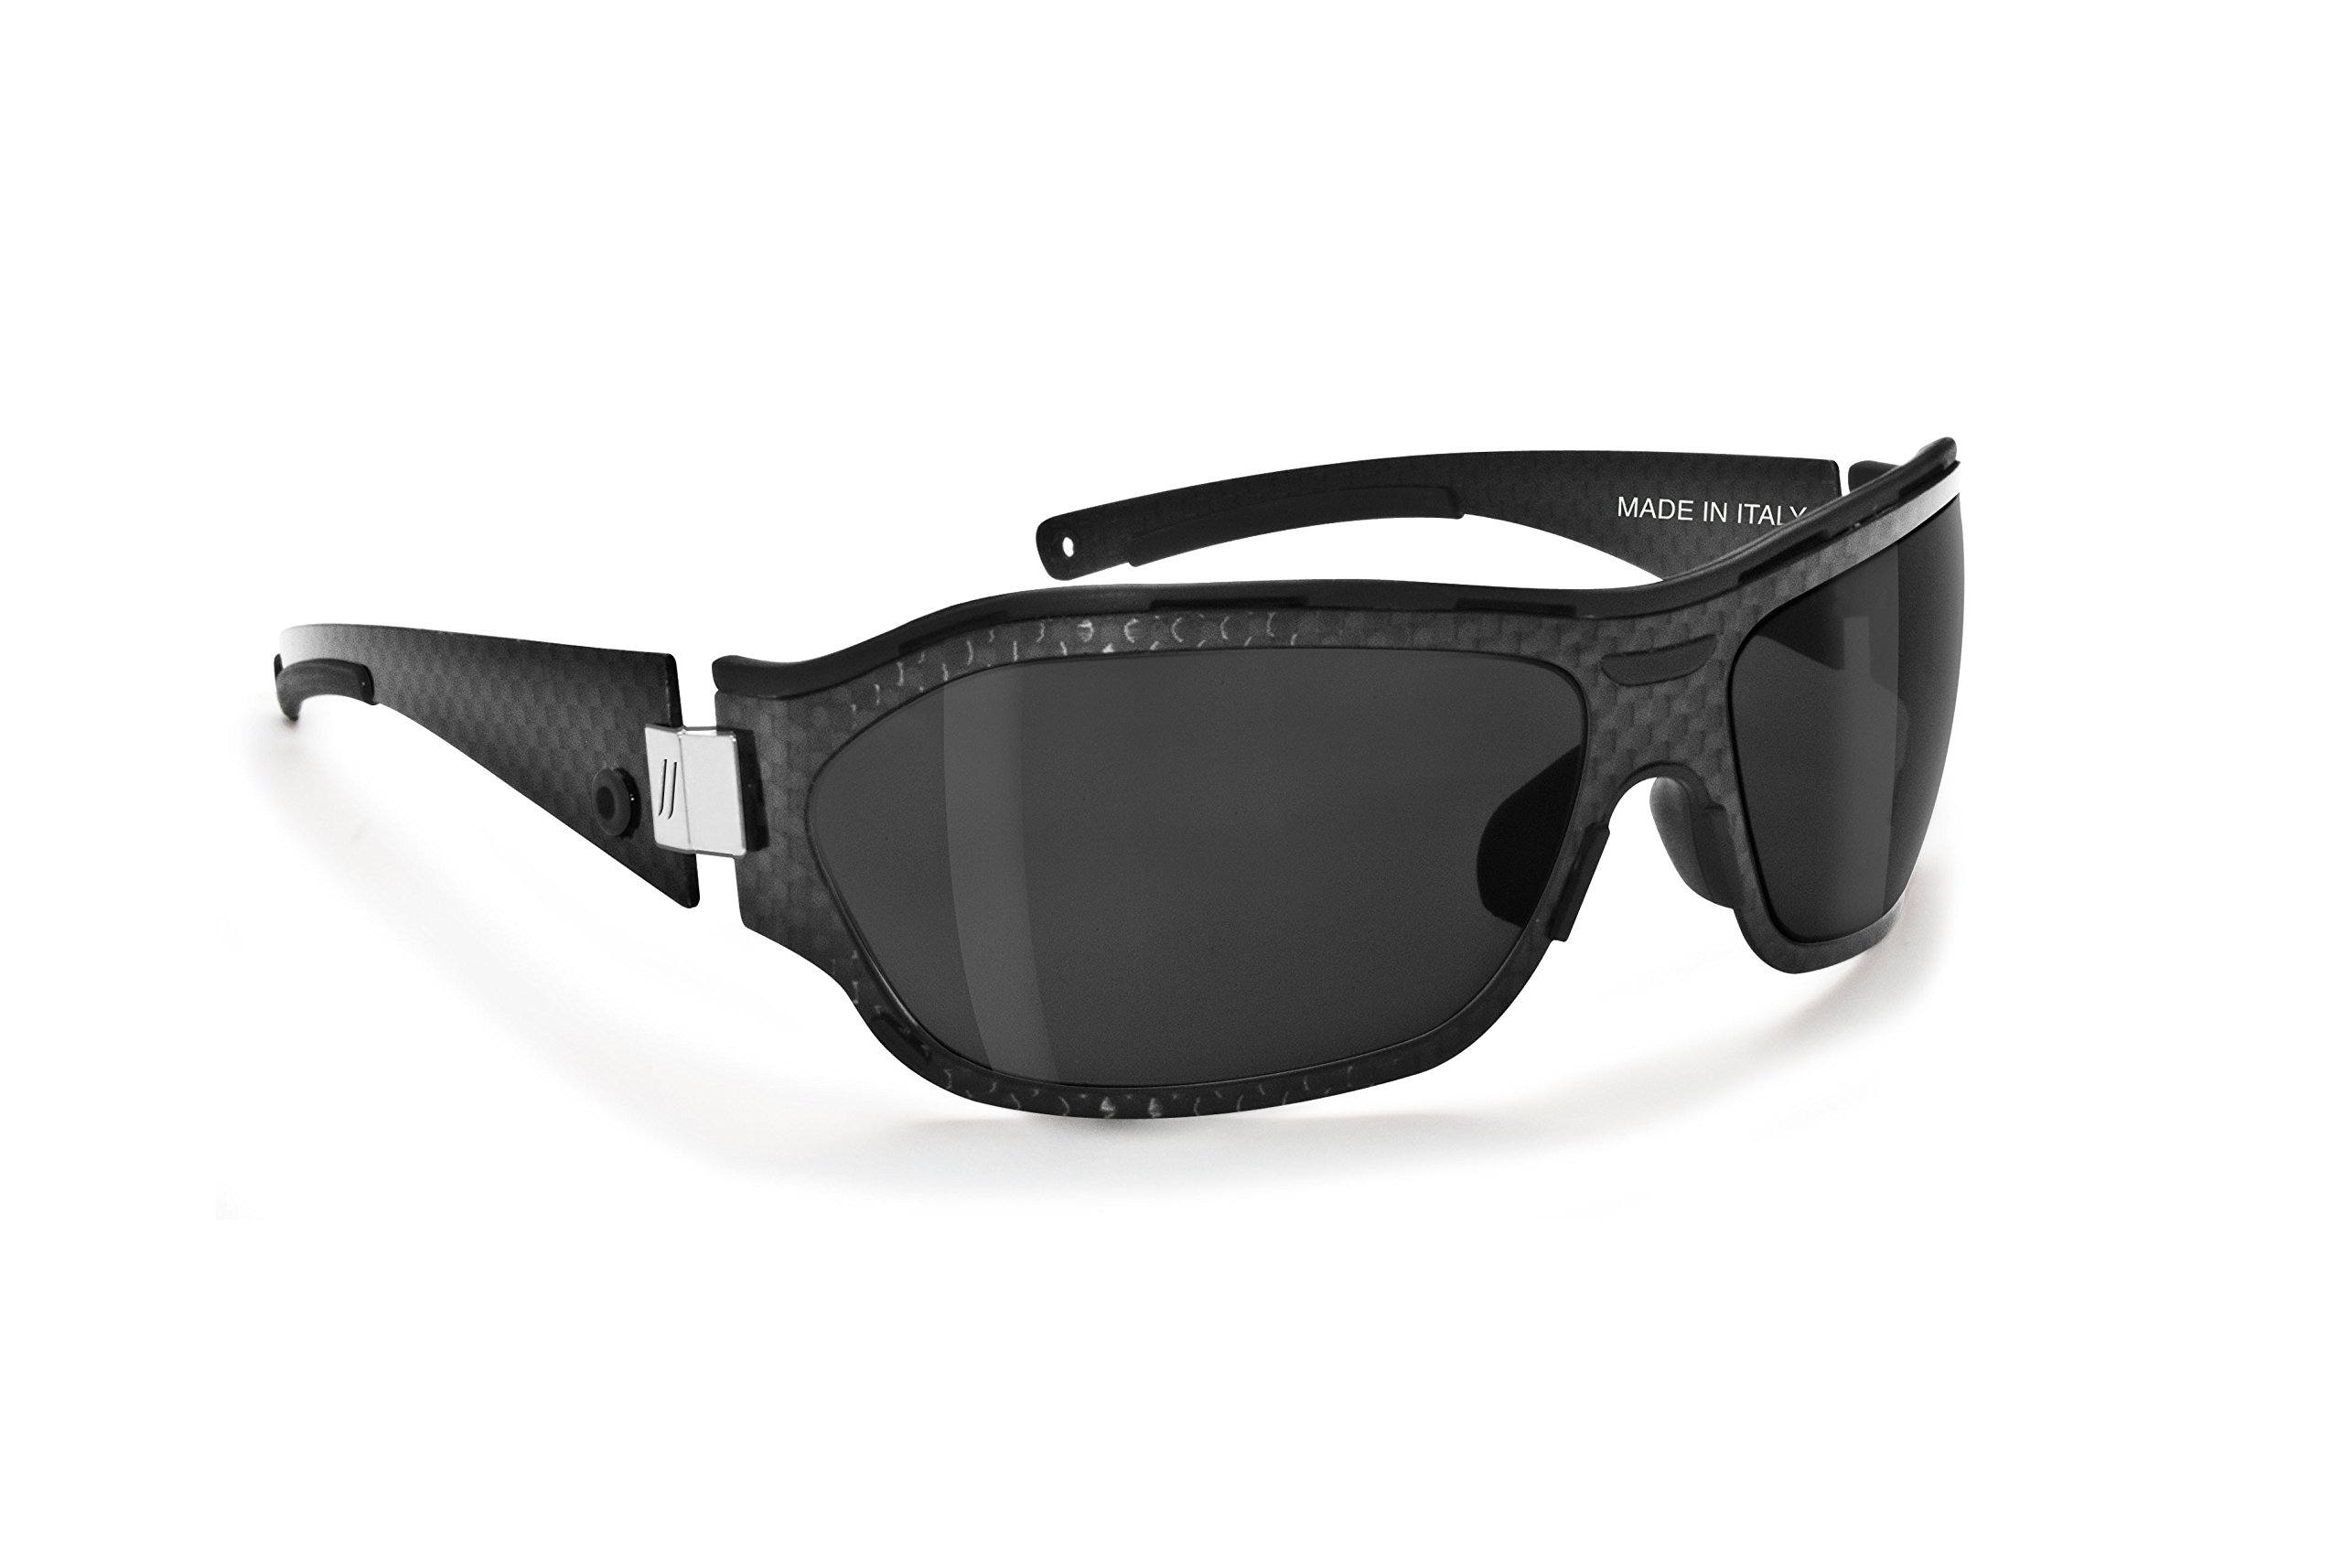 Polarized sunglasses made in real carbon handmade in Italy by Bertoni iWear